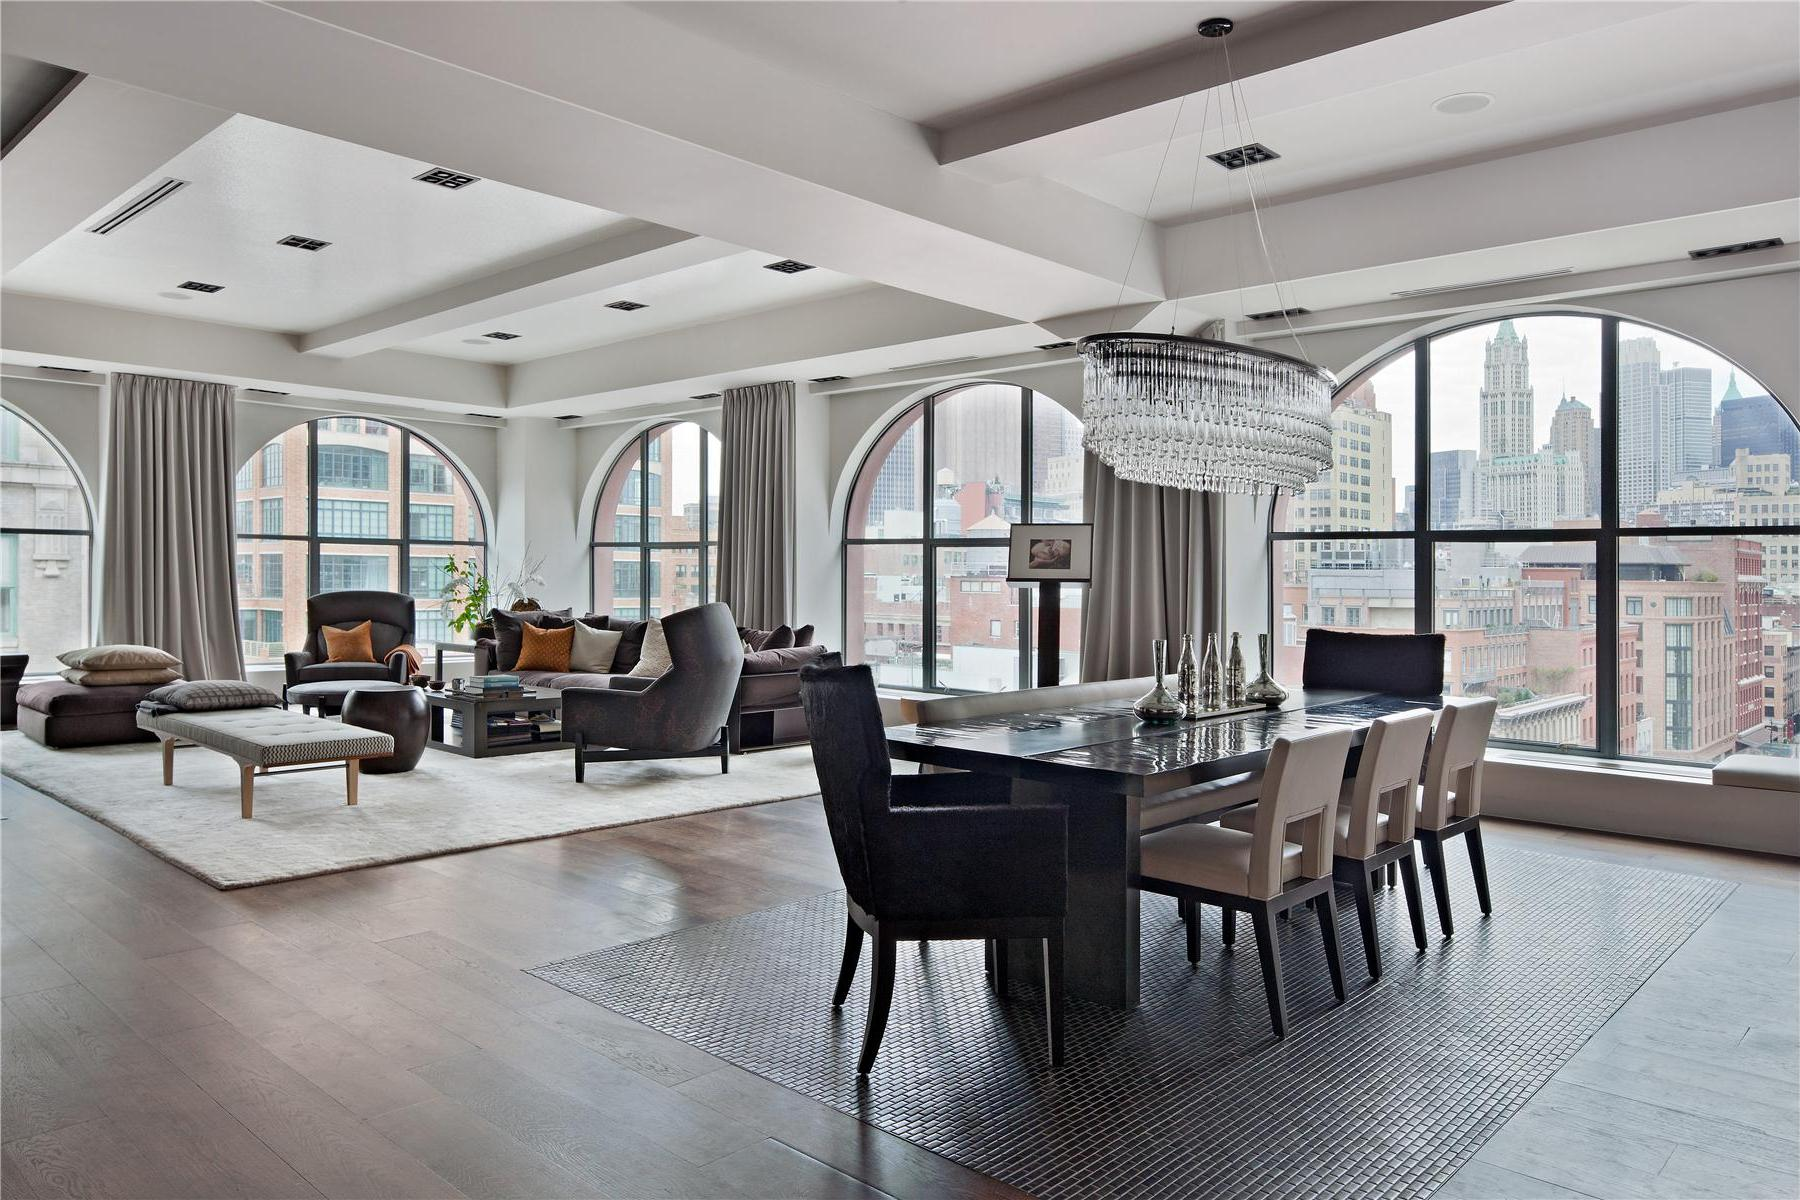 Beau Spectacular 408 Greenwich Street Loft In Tribeca, New York. Apartments